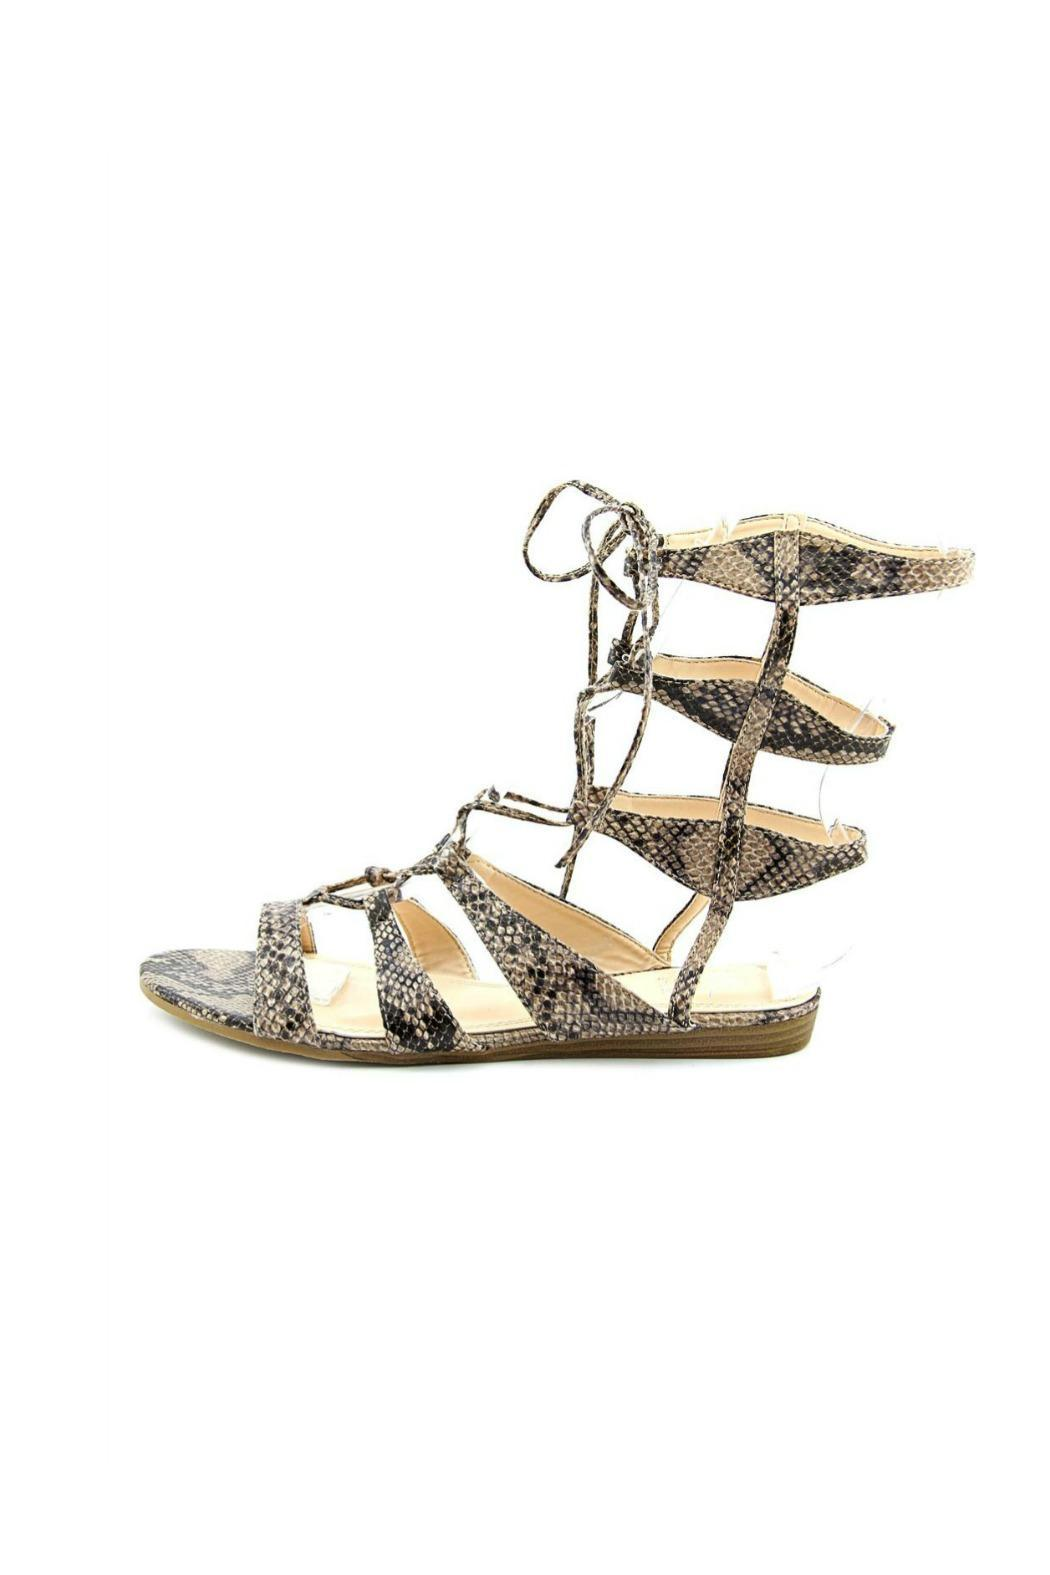 bcc94a21c333 gc shoes Amazon Gladiator Sandal from Louisiana by Yipsy Boutique ...